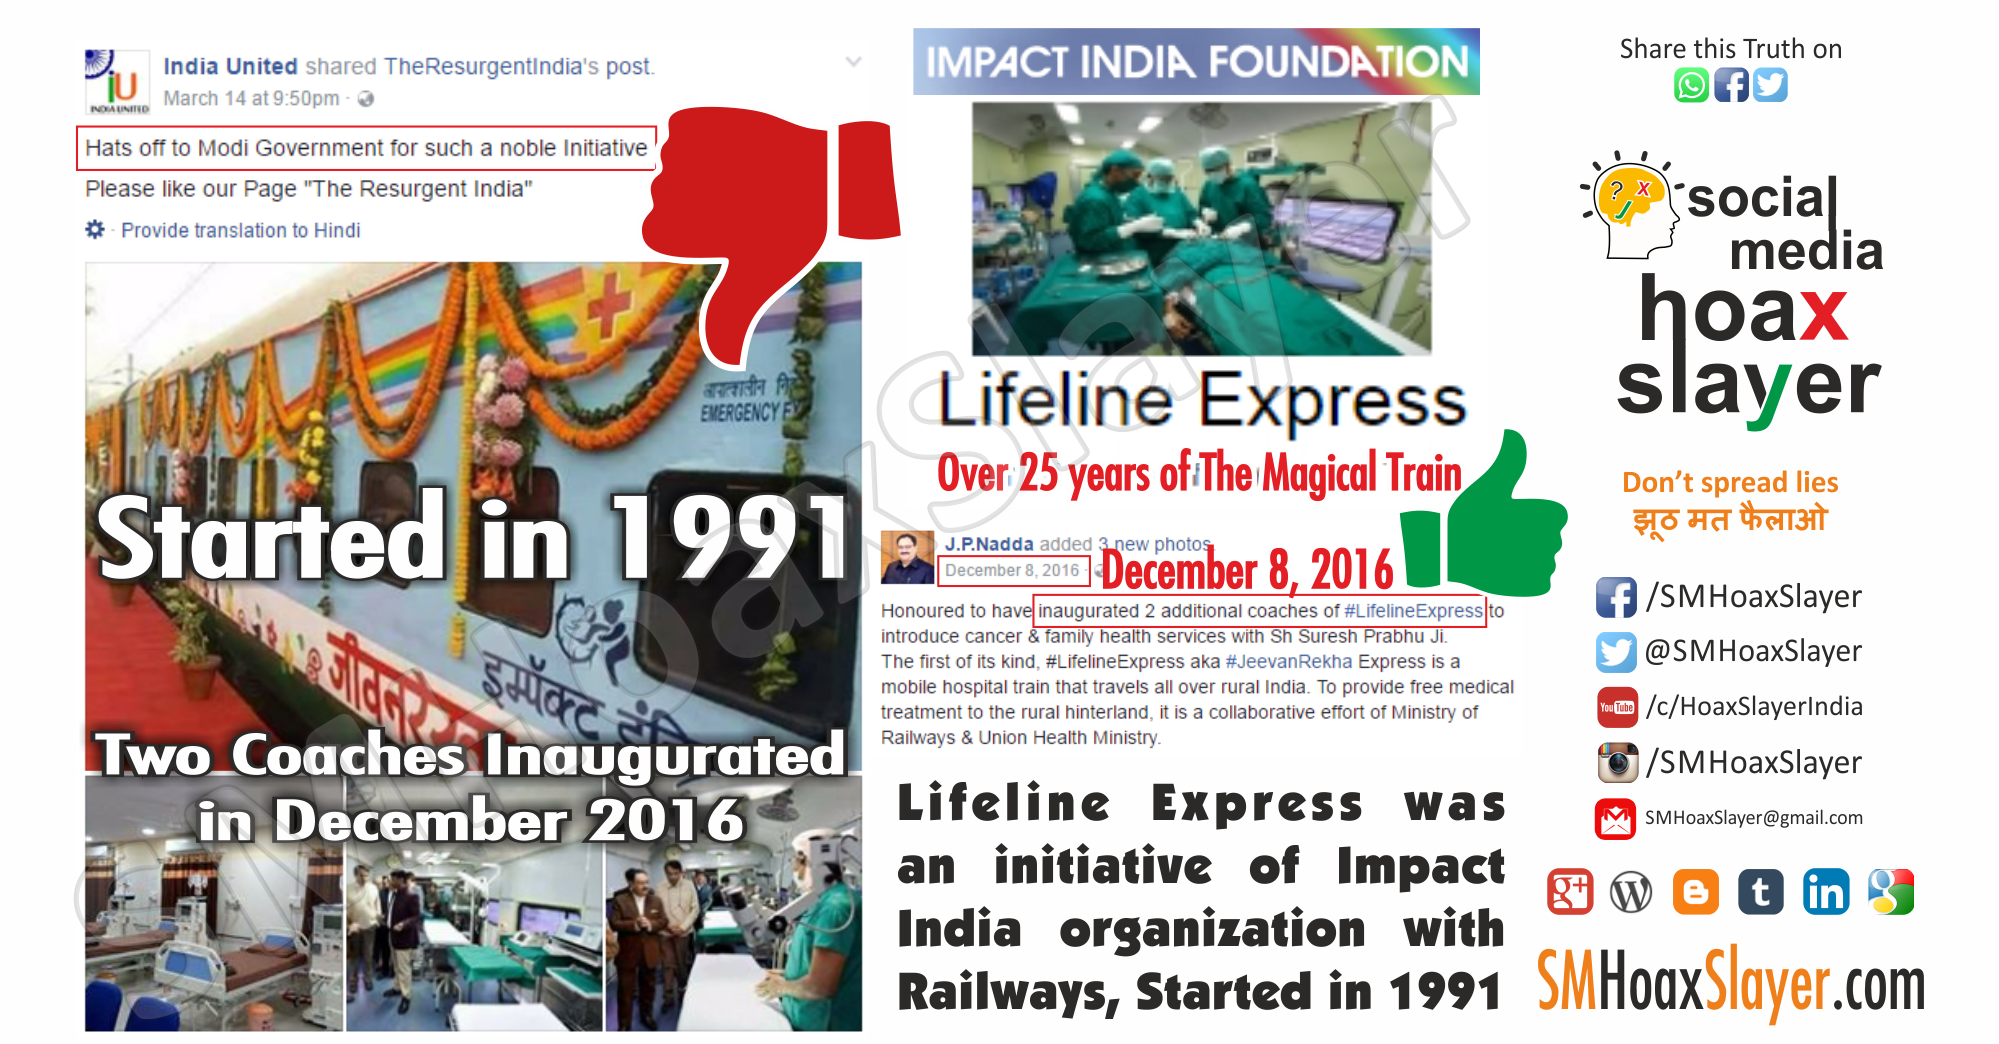 Credit misplaced! Jeevanrekha Express is Impact India's initiative